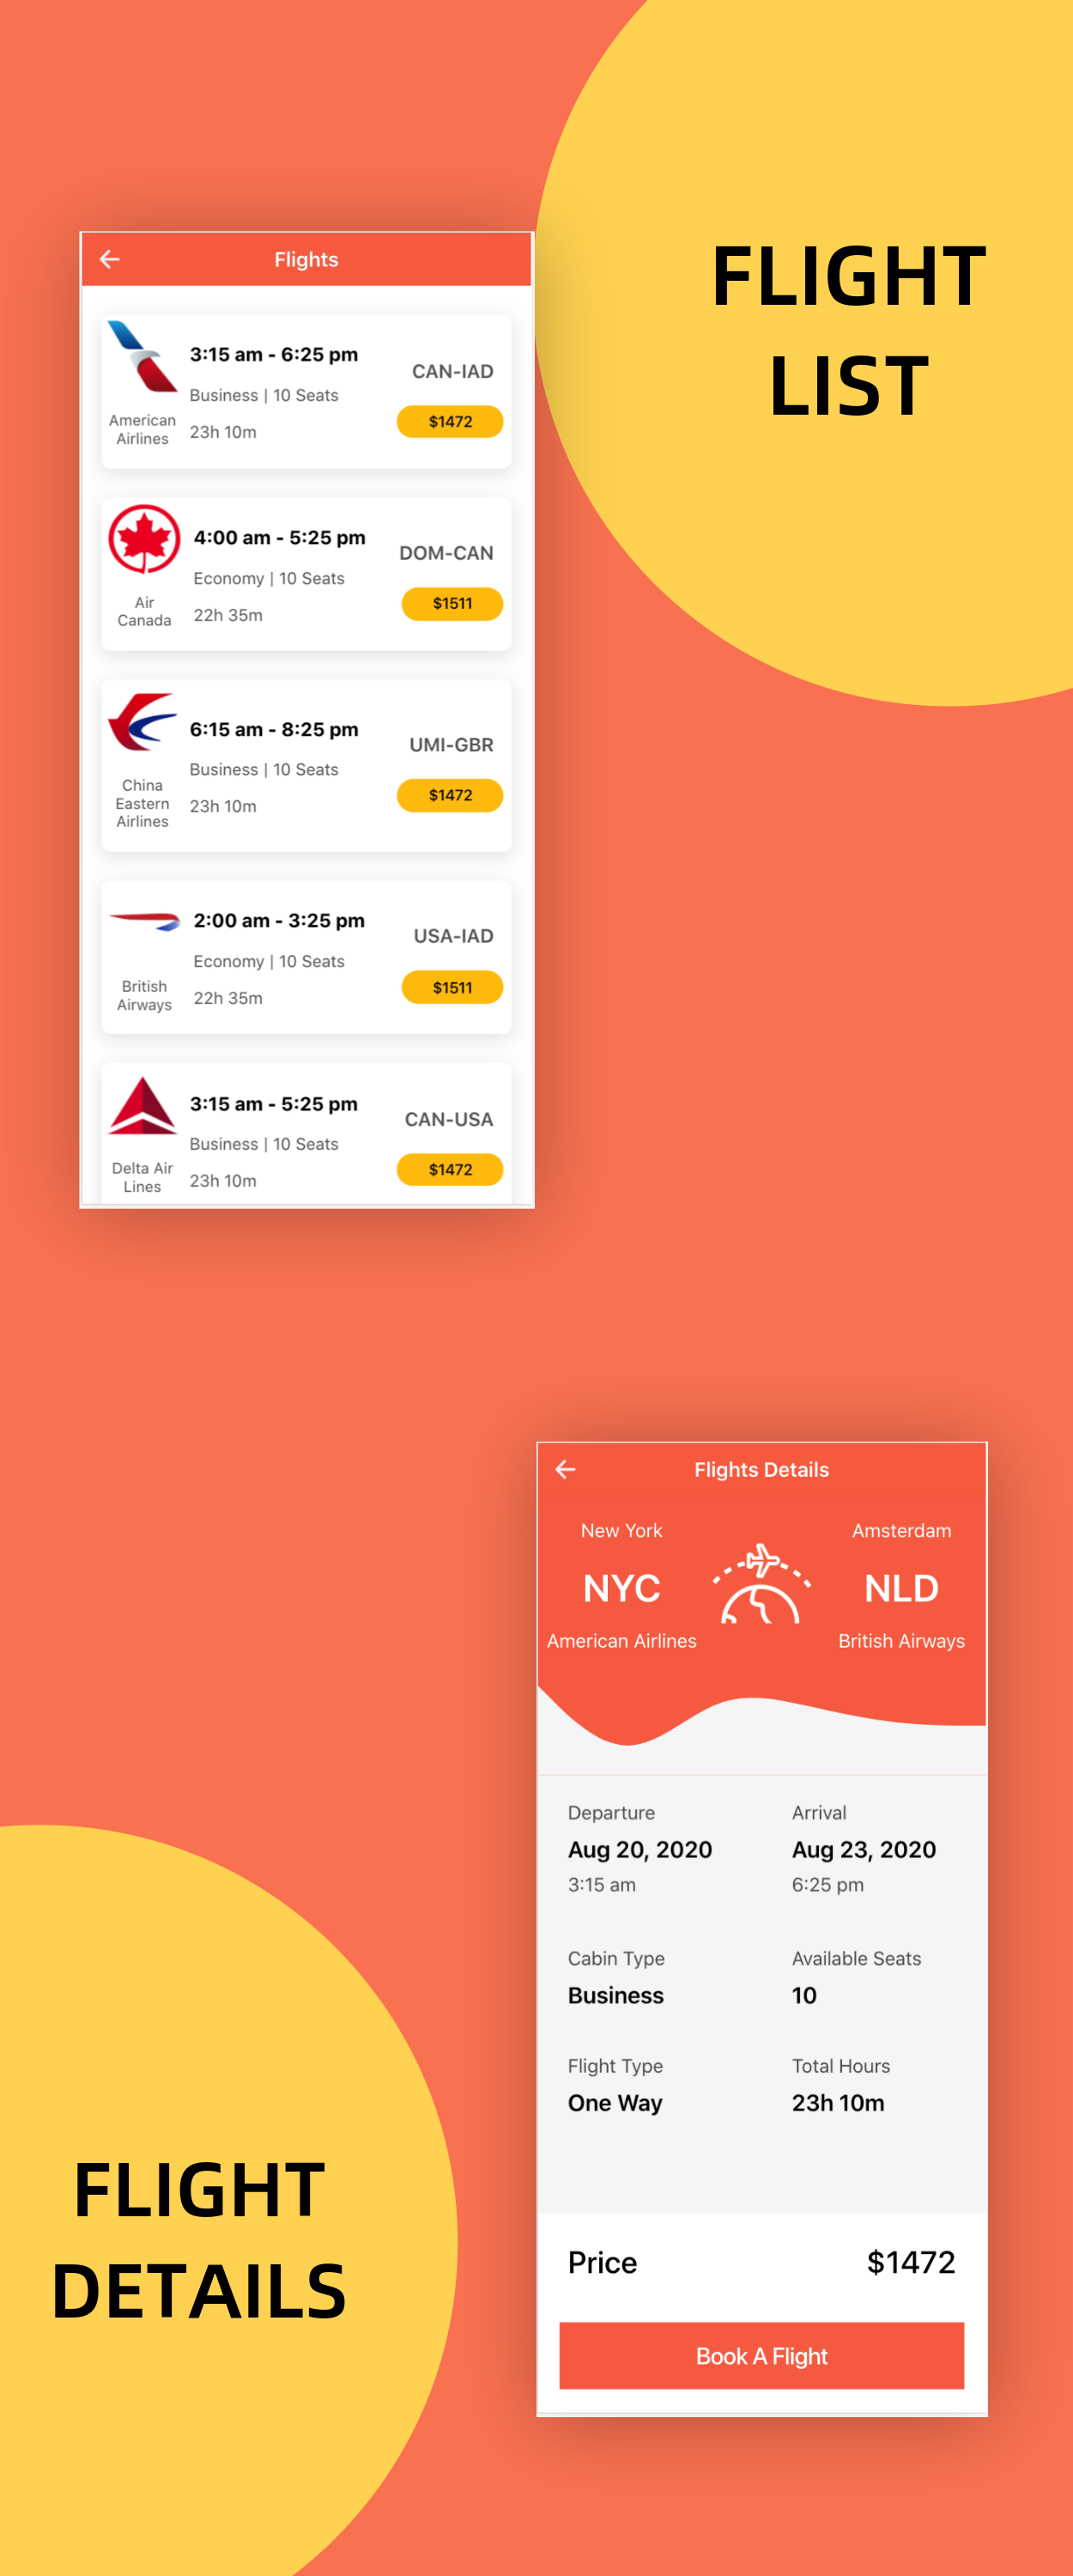 TravelEasy - A Travel Agency Theme UI App By Ionic 5 (Car, Hotel, Flight Booking) - 6